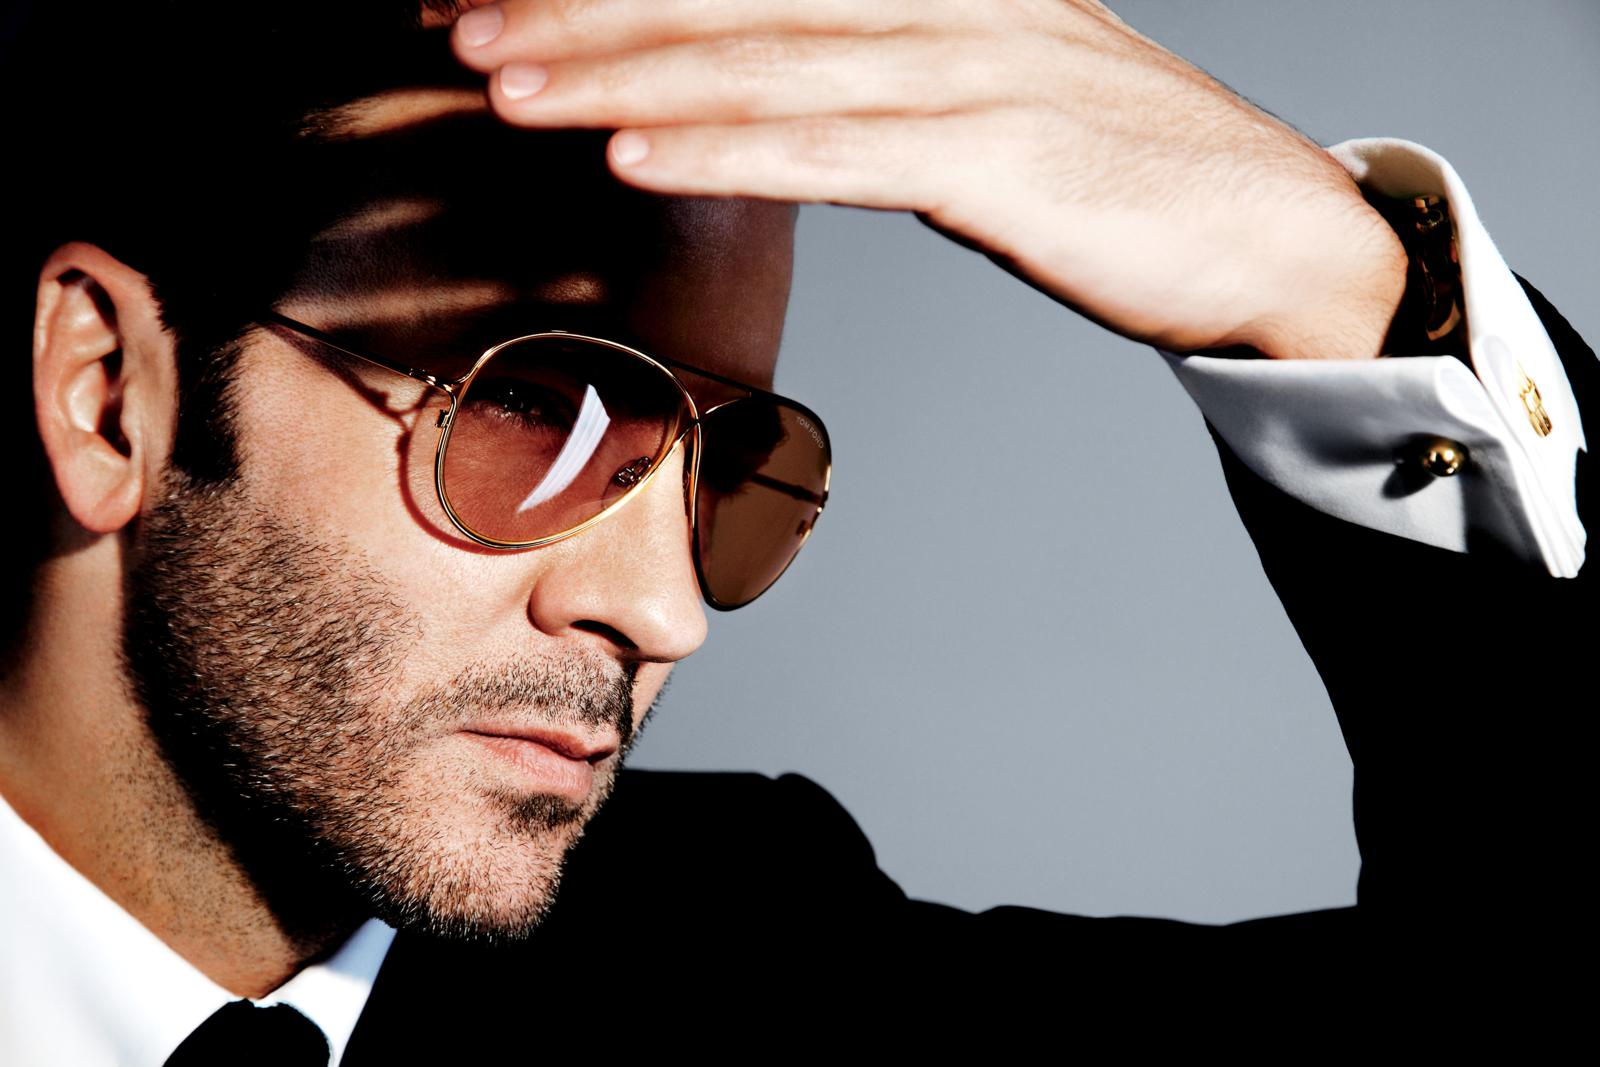 TOM FORD Private Eyewear Collection – Fashion Times